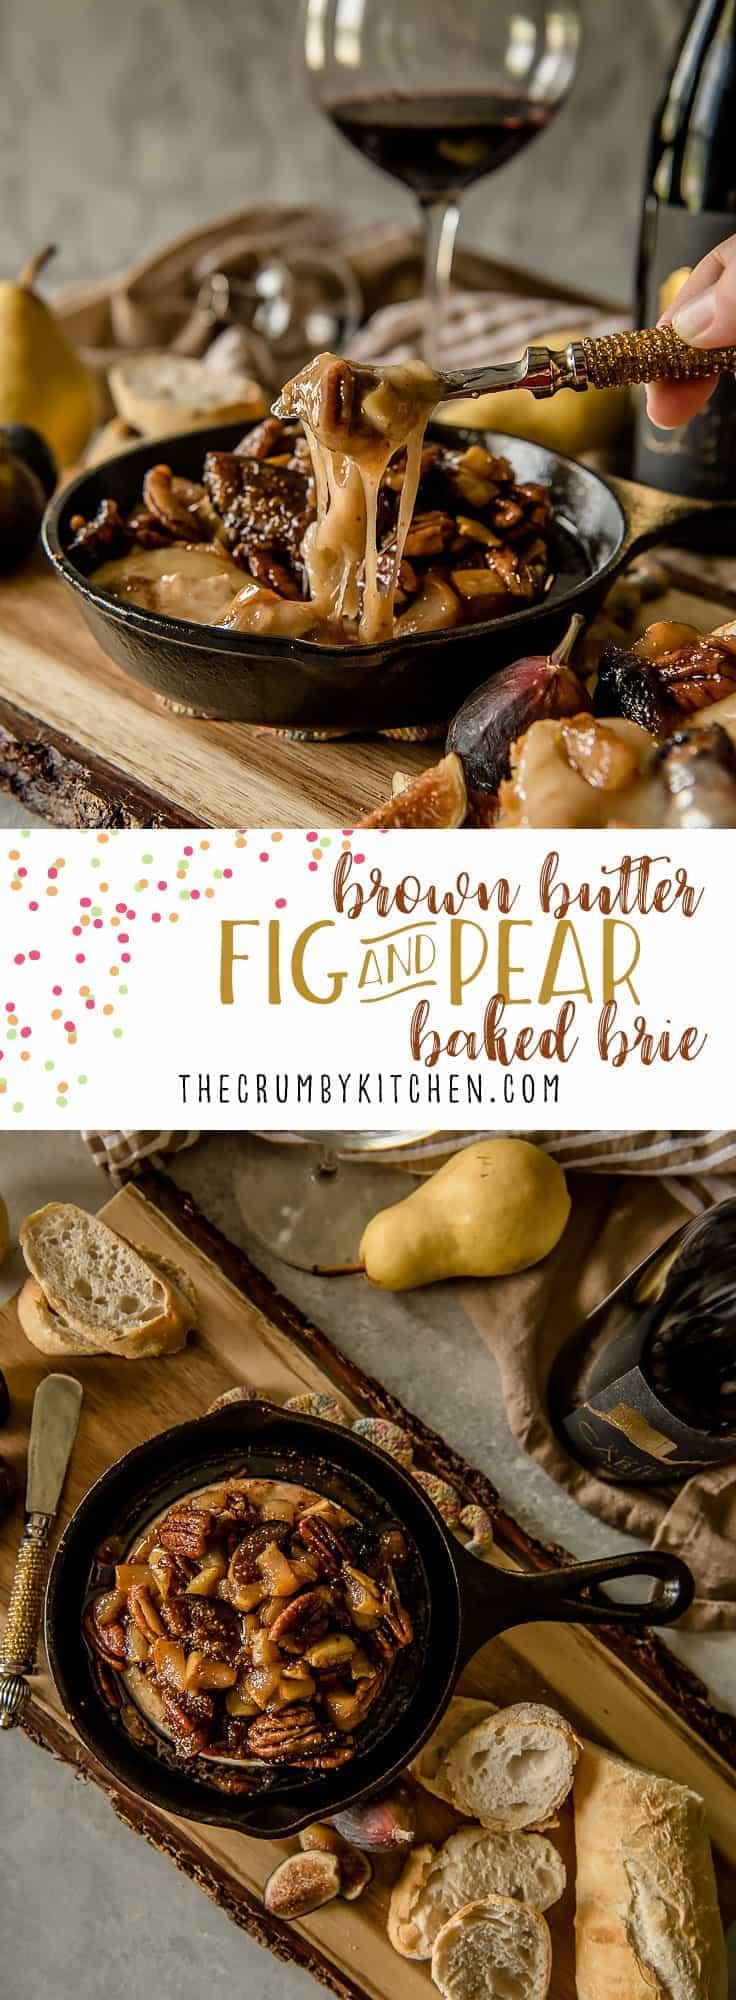 This creamyBrown Butter Fig & Pear Baked Brieis both elegant and comforting, and is sure to be the hit of any holiday or cold weather party! Figs, pears, pecans, and a little sweetness bring out the best in your favorite soft cheese.